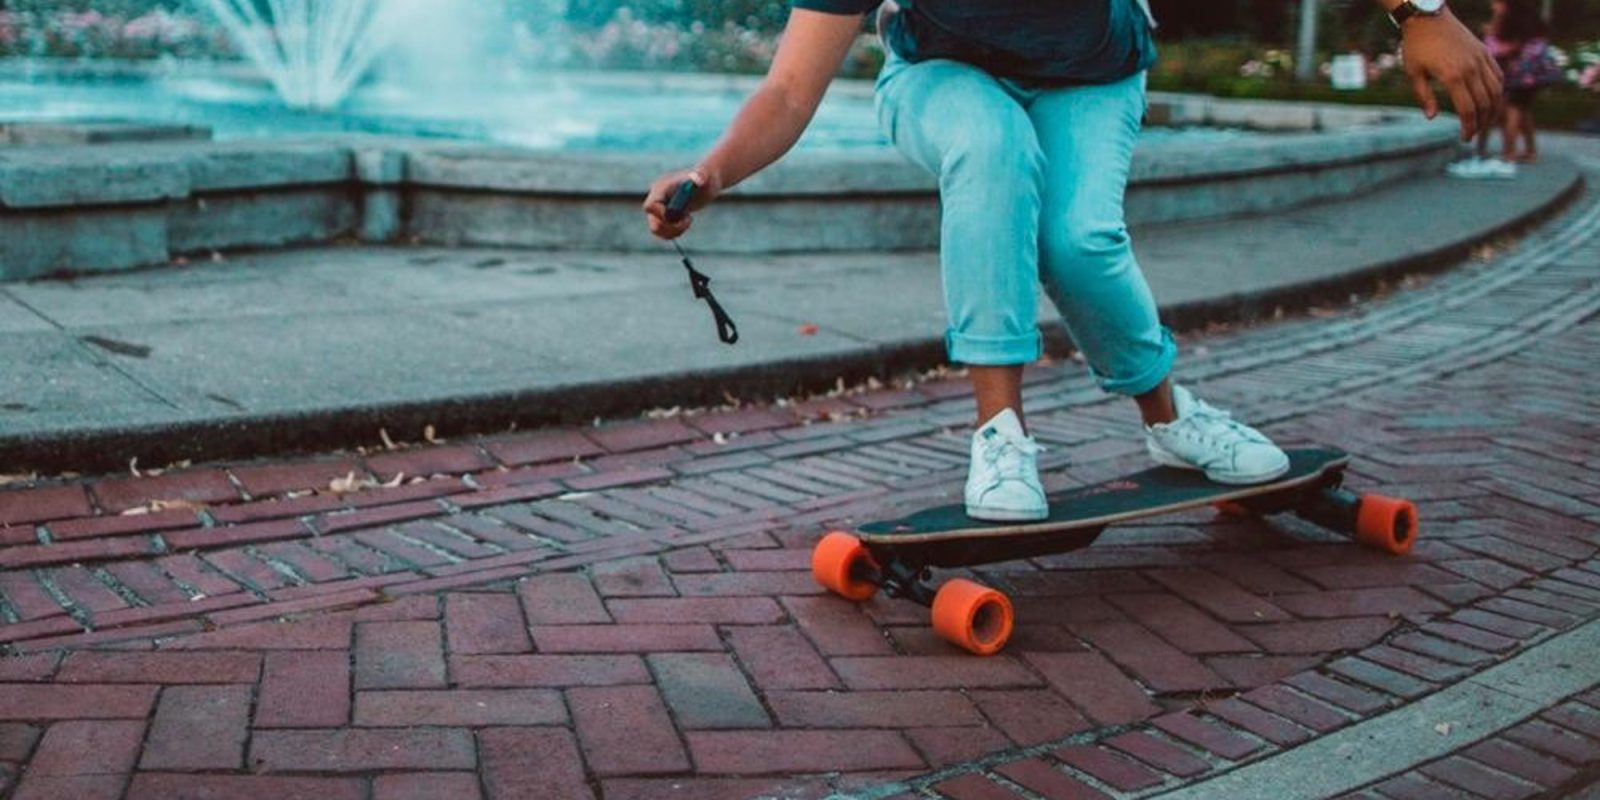 Ride in style with 25% off Boosted Boards, prices from $749 shipped